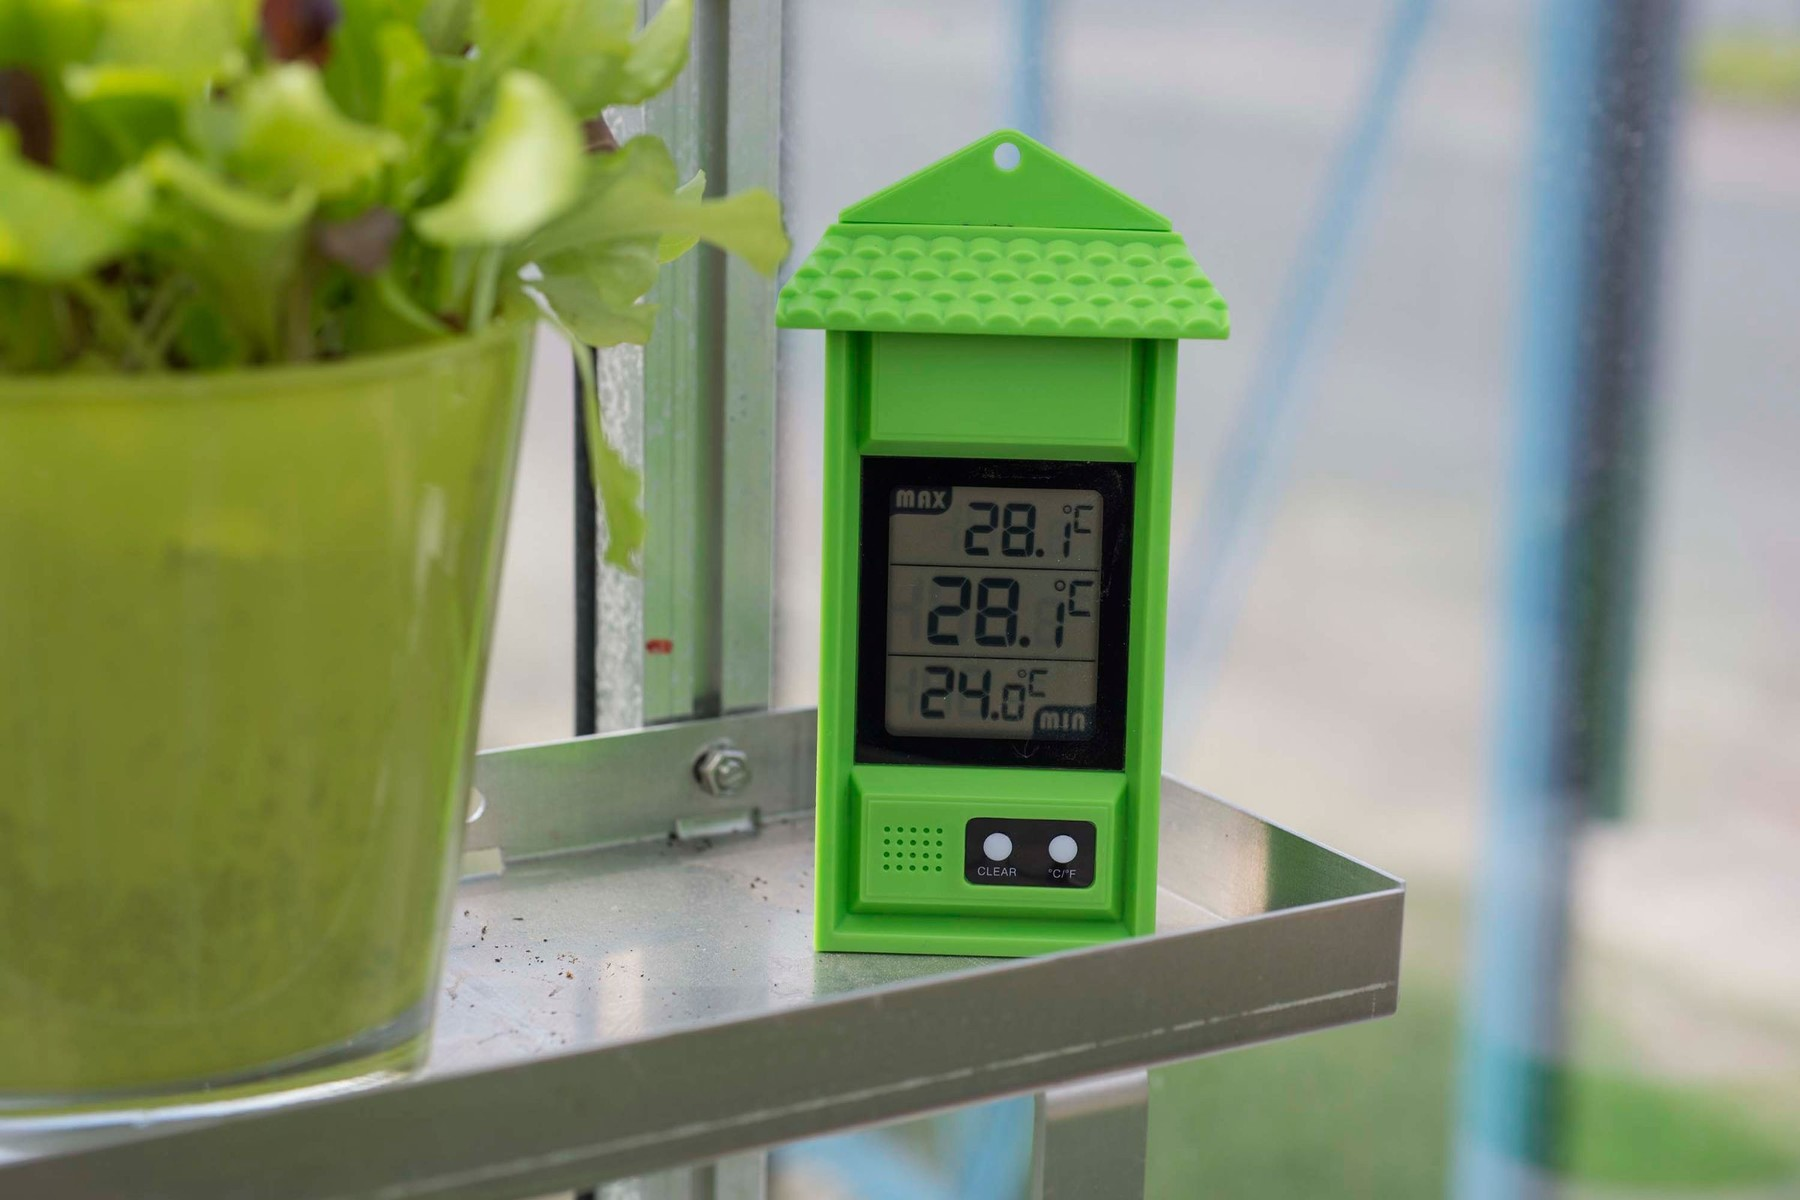 ACD thermometer